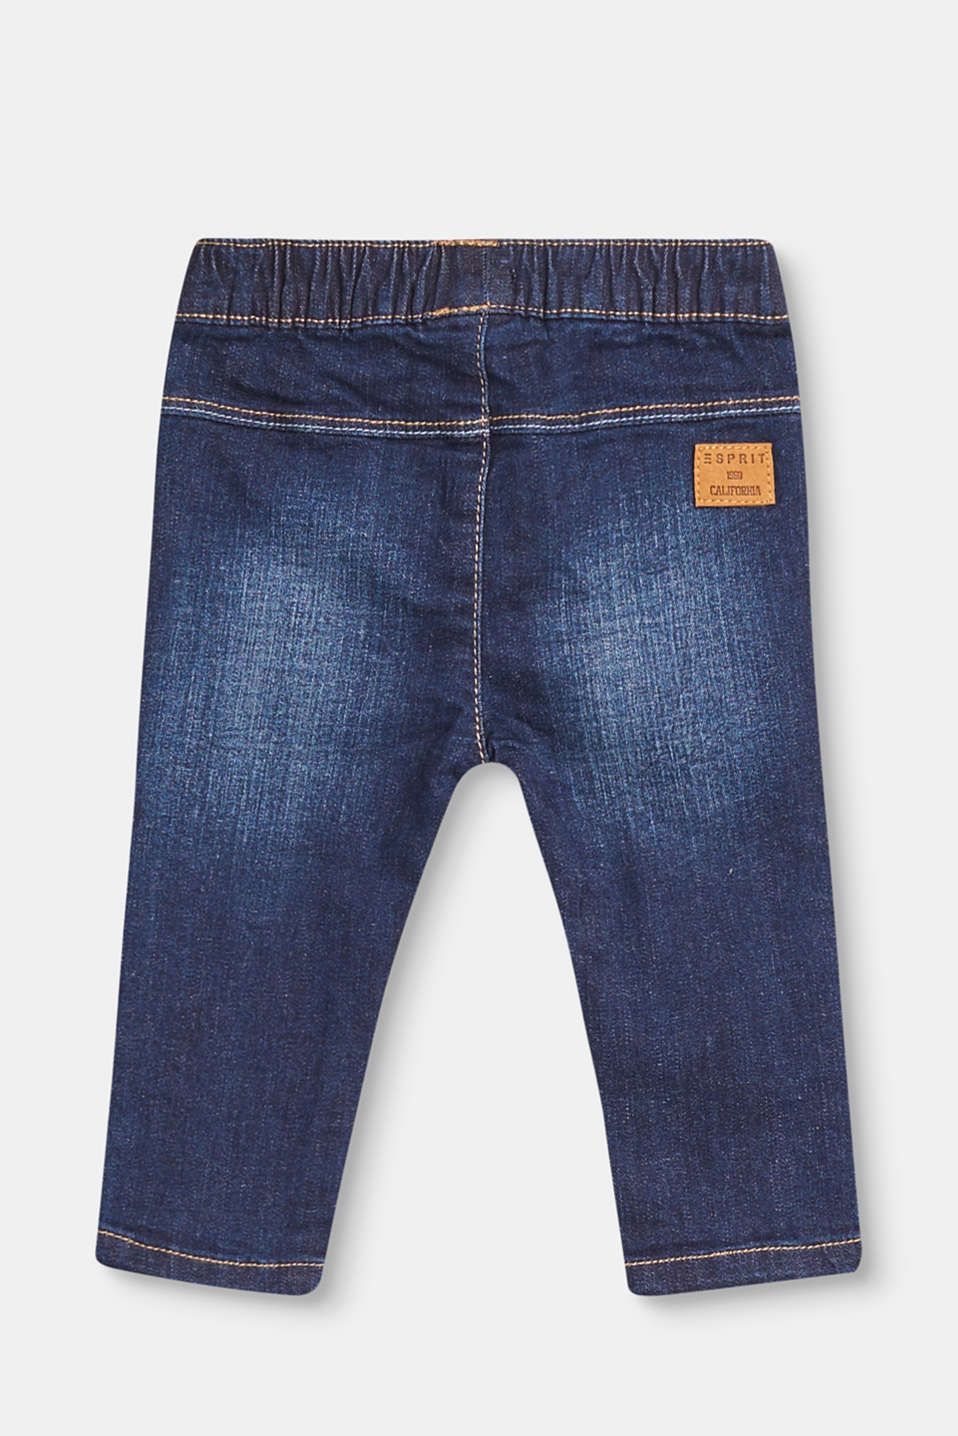 Lightly washed jeans with a stretchy waistband